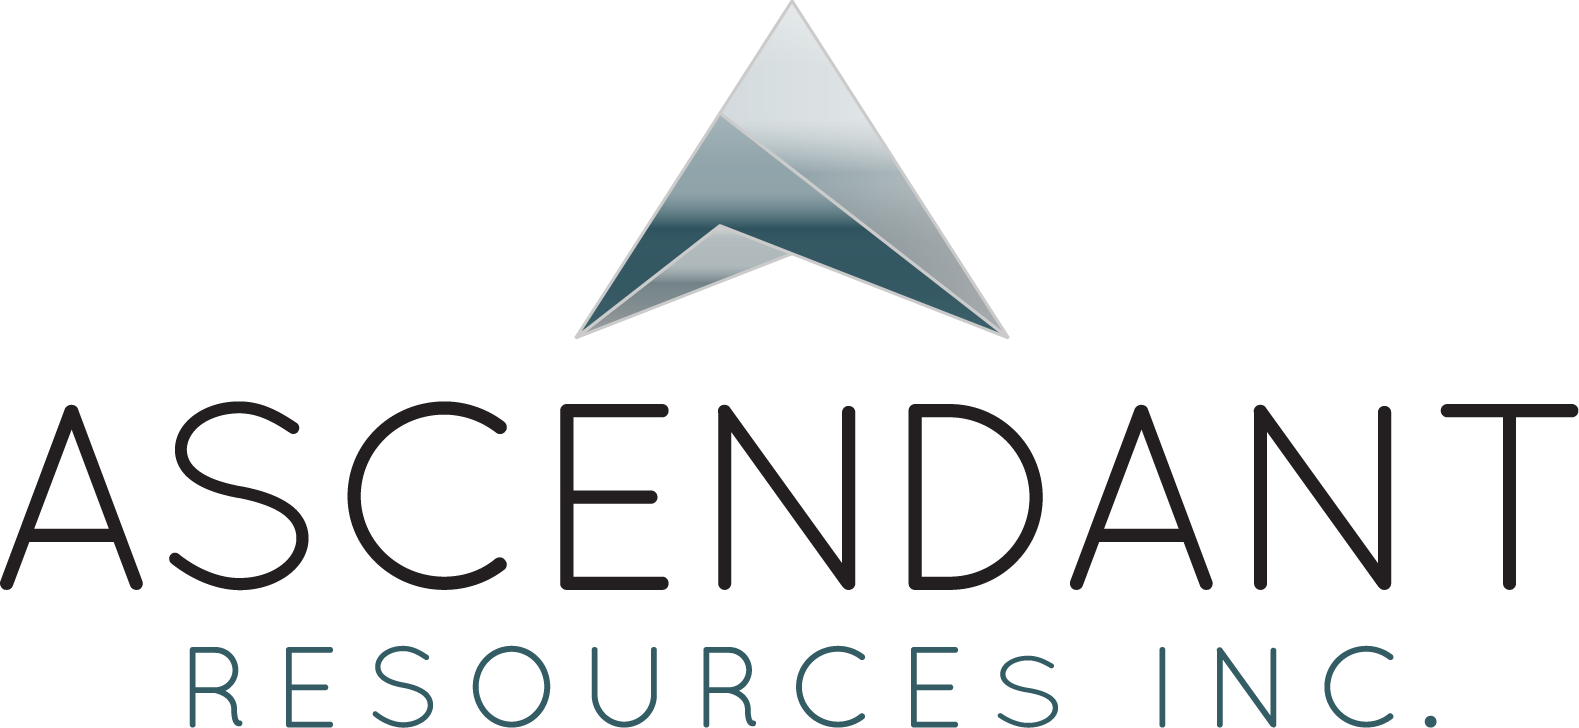 Ascendant Resources Discovers Native Copper Amid On-Going Drilling Campaign at Lagoa Salgada